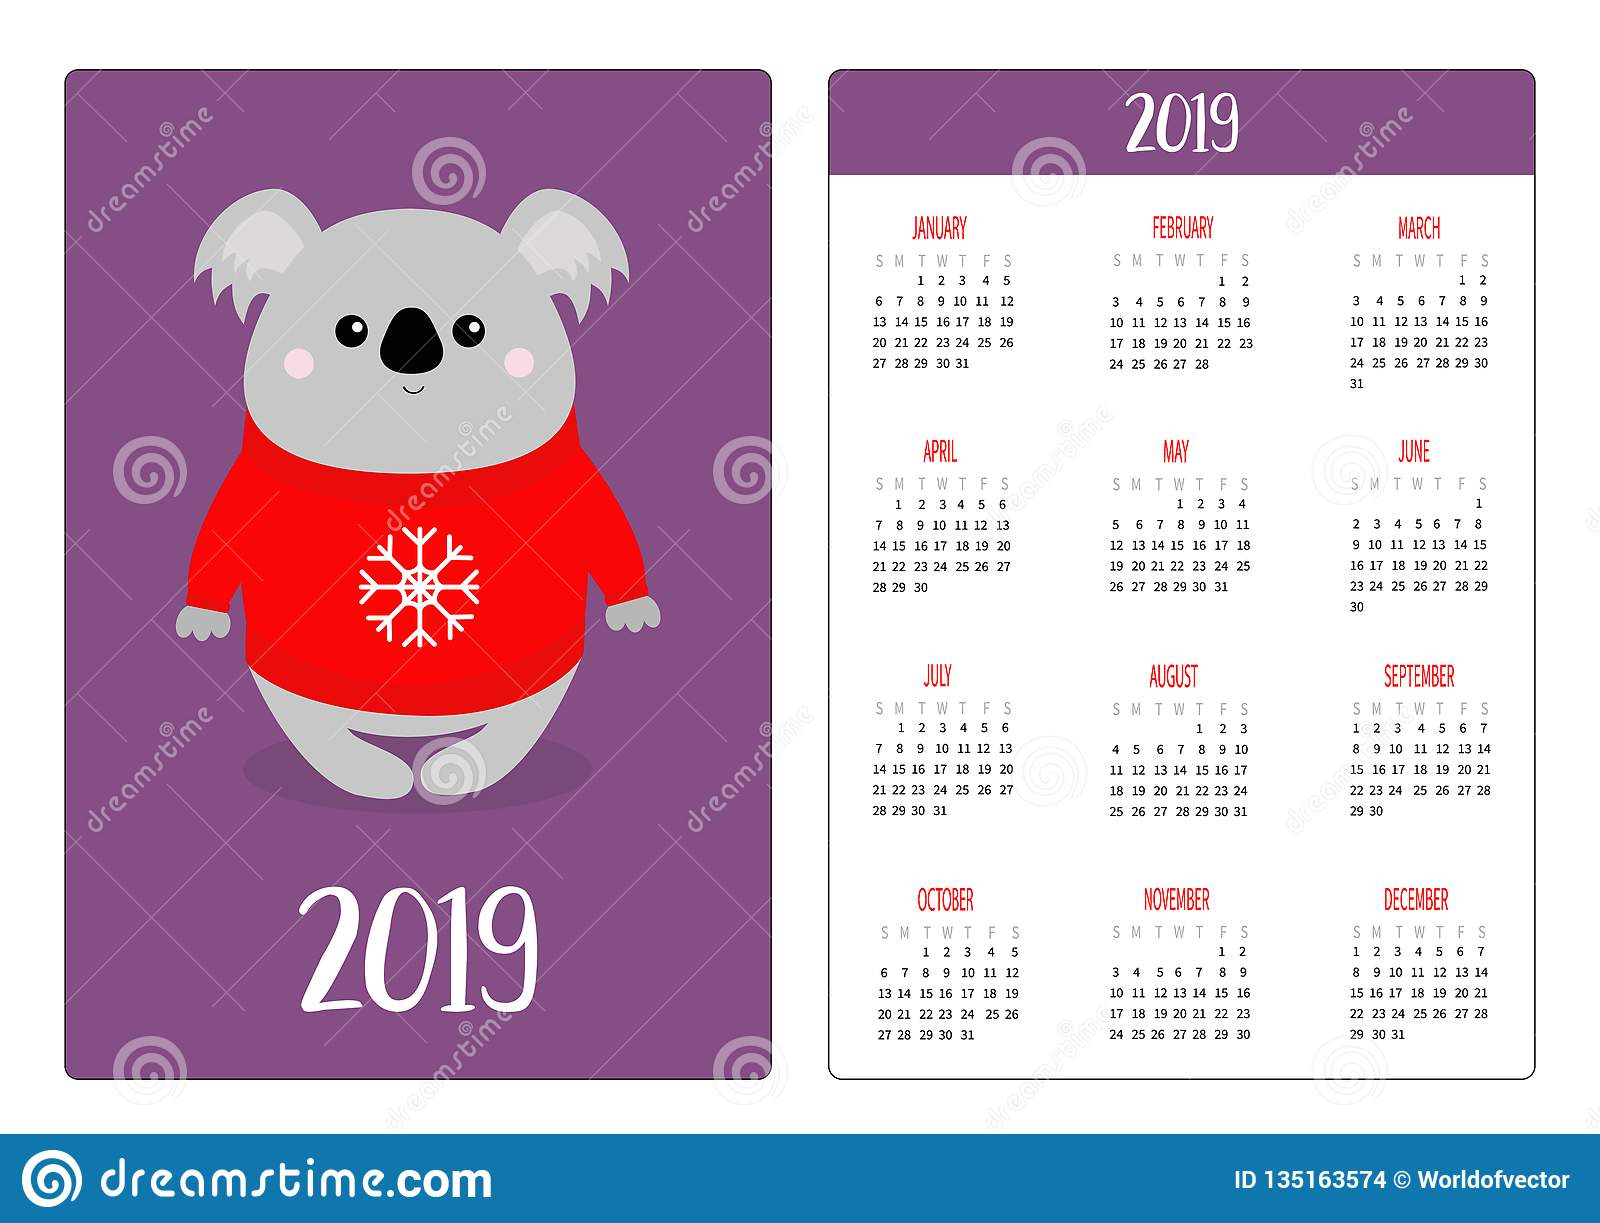 Ugly Christmas Sweater Cartoon.Koala In Red Ugly Christmas Sweater With Snowflake Simple